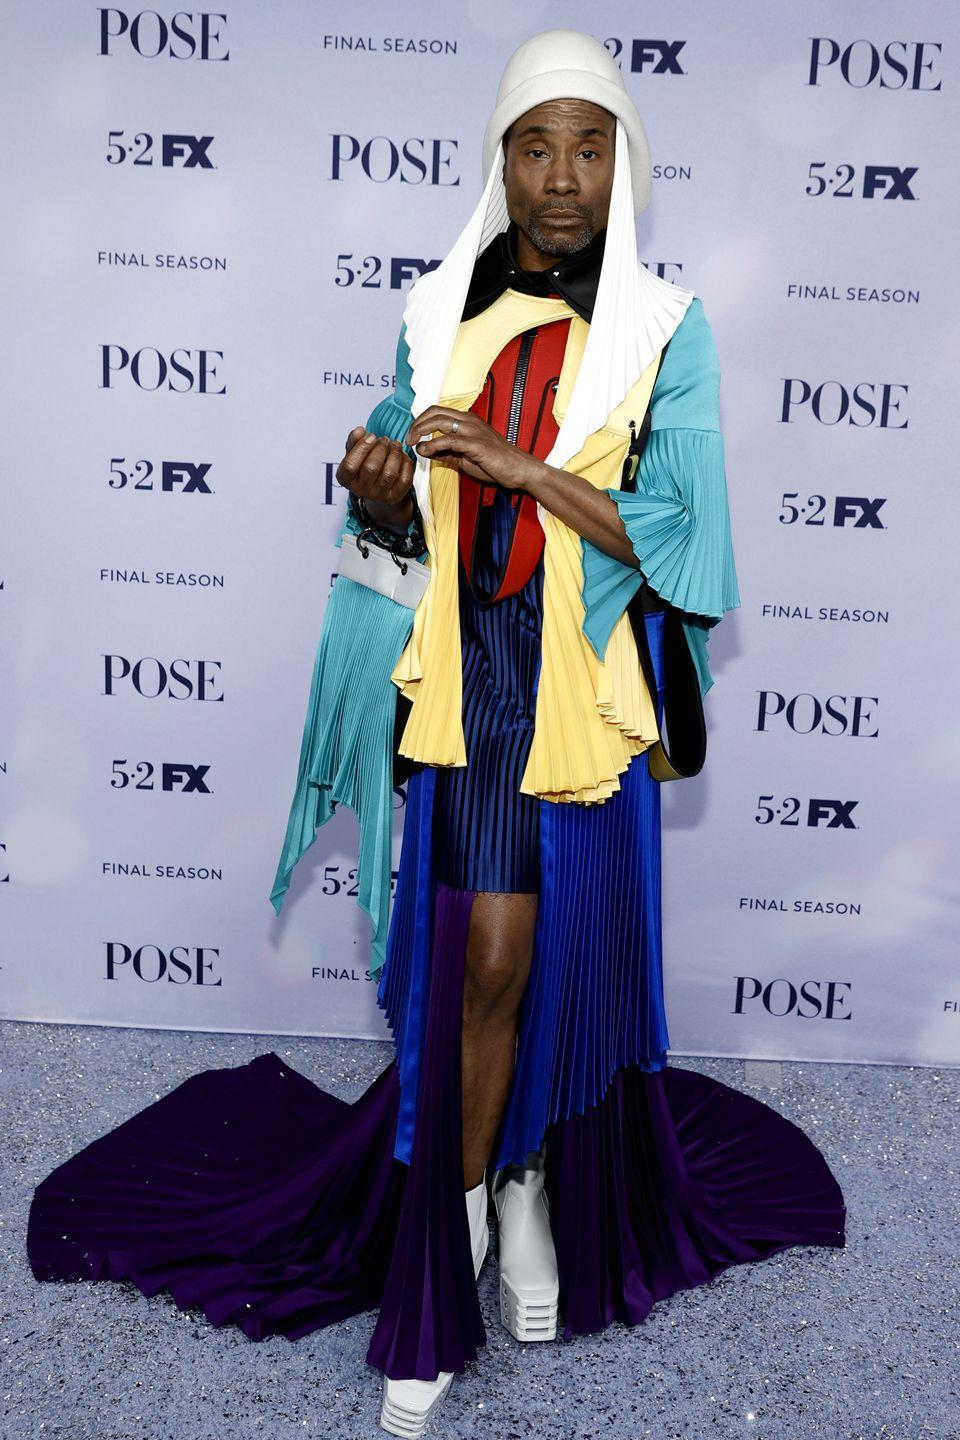 <p>The actor wore a multicoloured outfit with a white headdress to the Pose season three premiere in New York. </p>